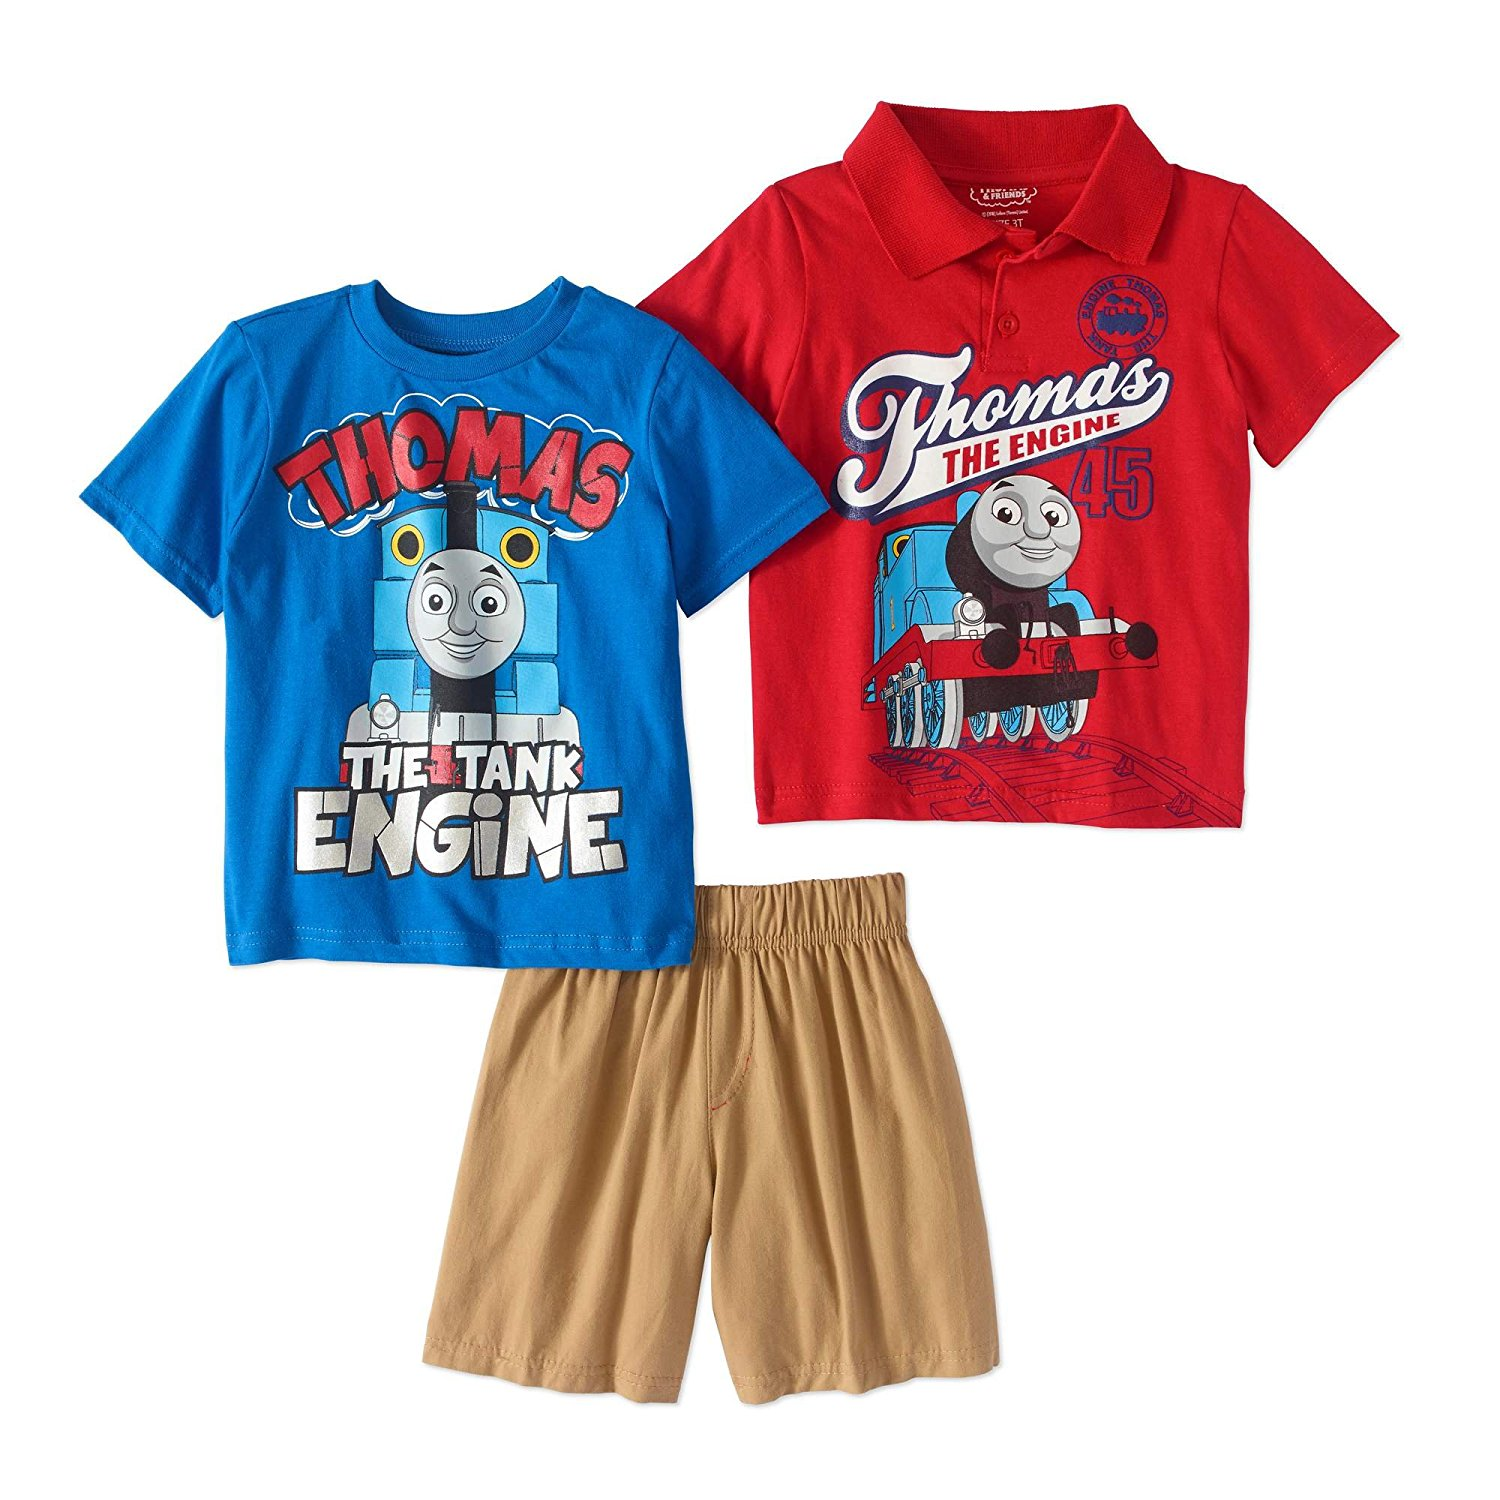 6560f0af Get Quotations · Thomas The Train Toddler Boys Polo Shirt, T-Shirt & Shorts,  3PC Outfit